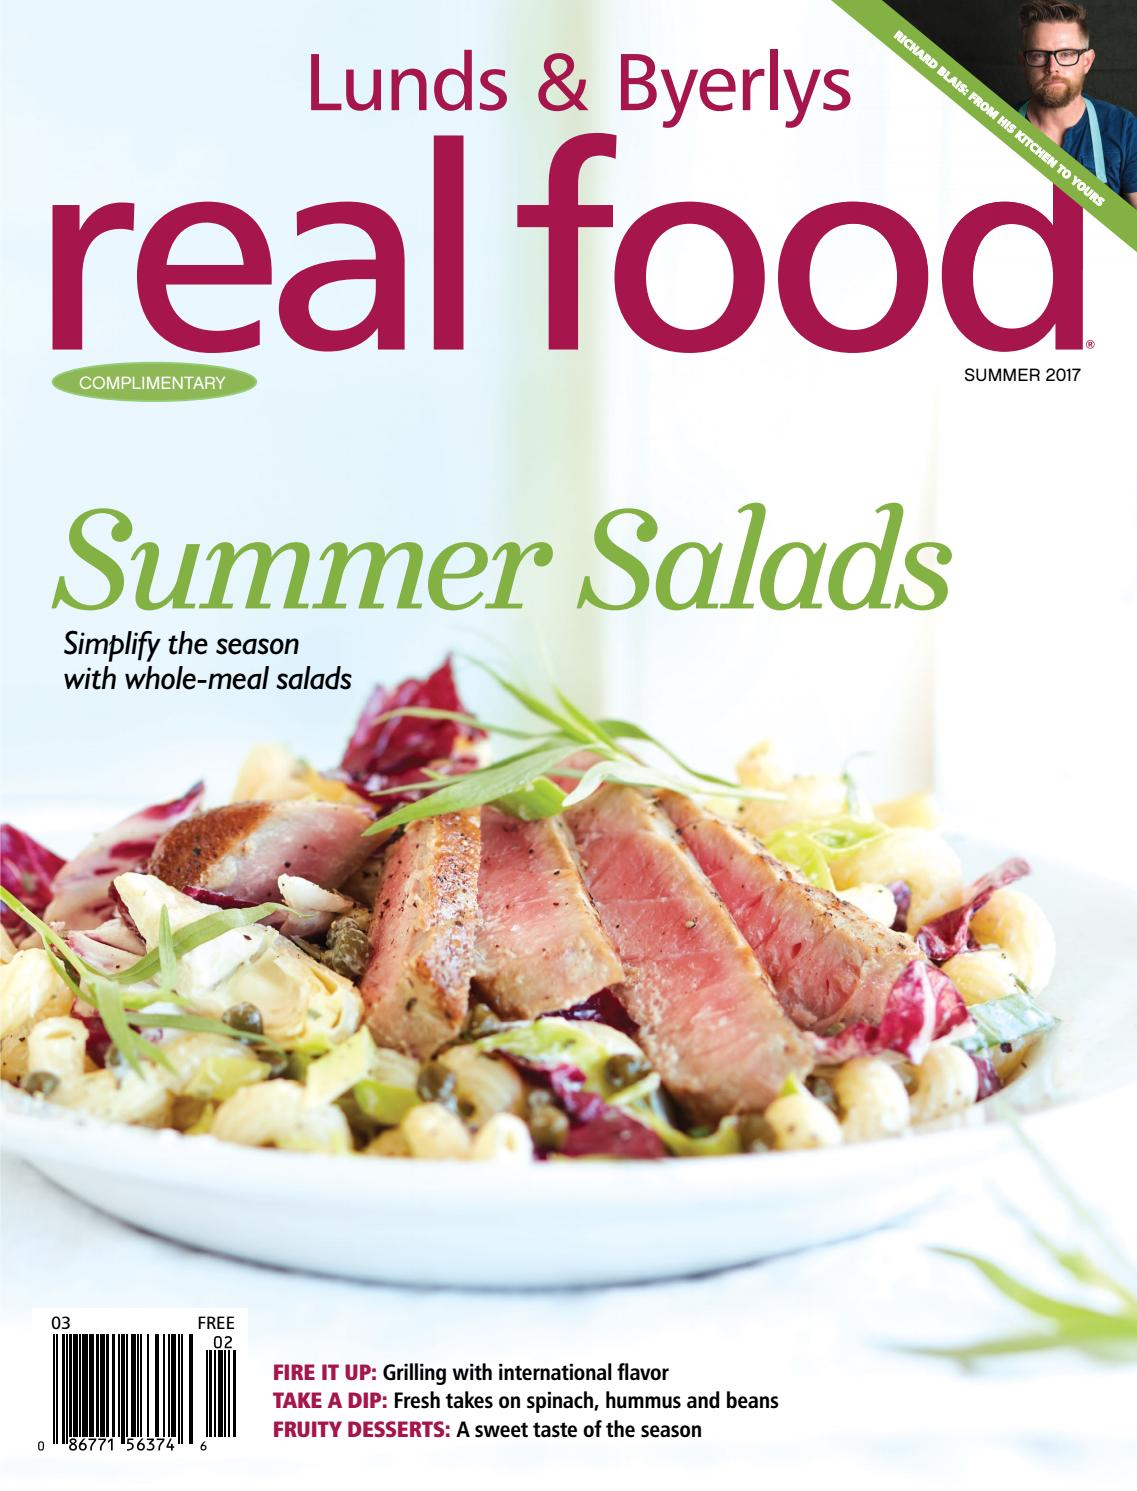 Lunds & Byerlys REAL FOOD Summer 2017 by Lunds & Byerlys - issuu